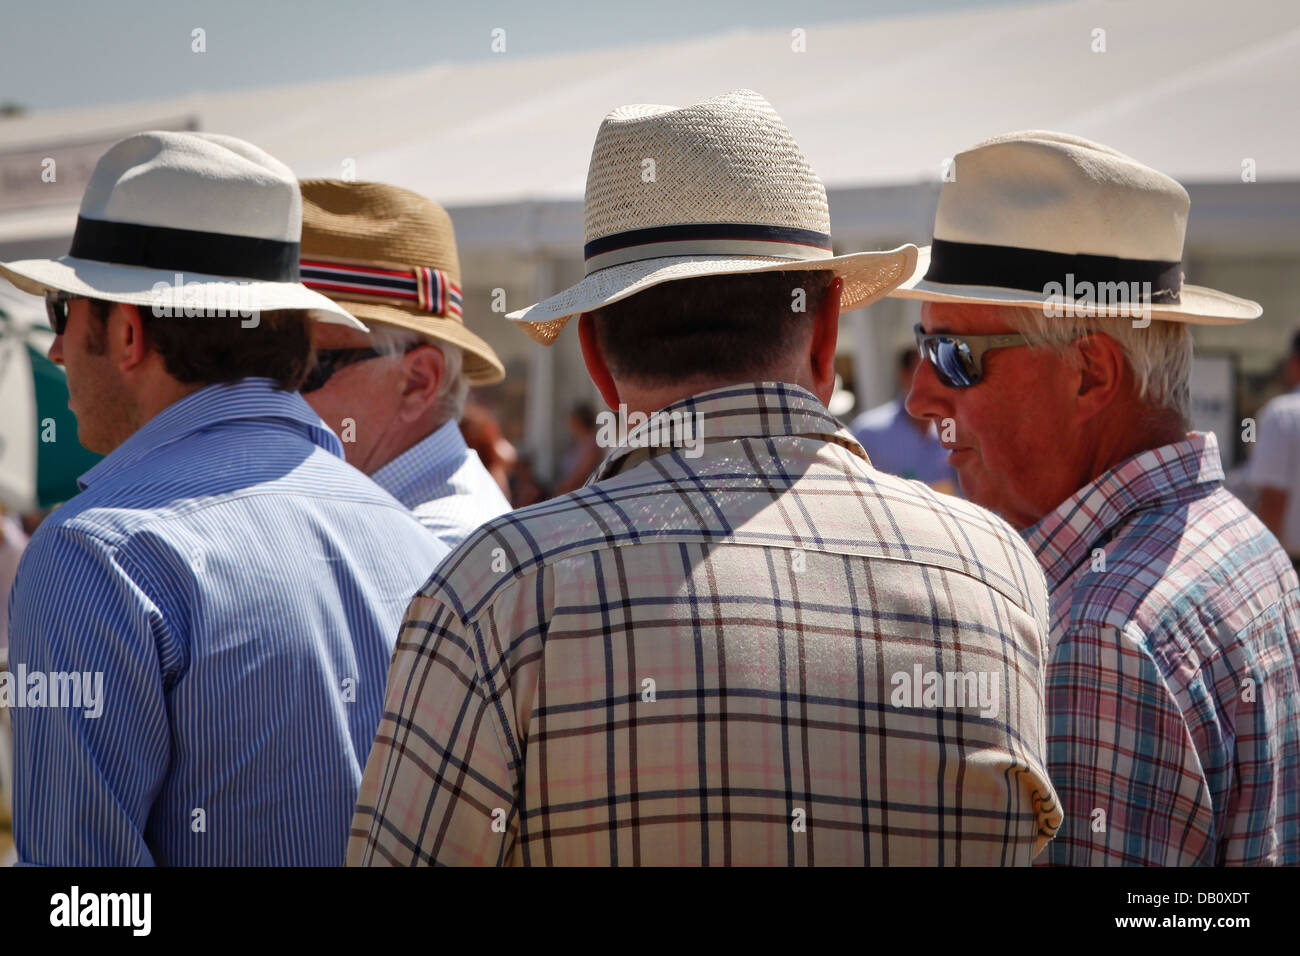 96068b332e4193 Middle aged men wearing Panama hats to keep cool during a summer heatwave -  Stock Image